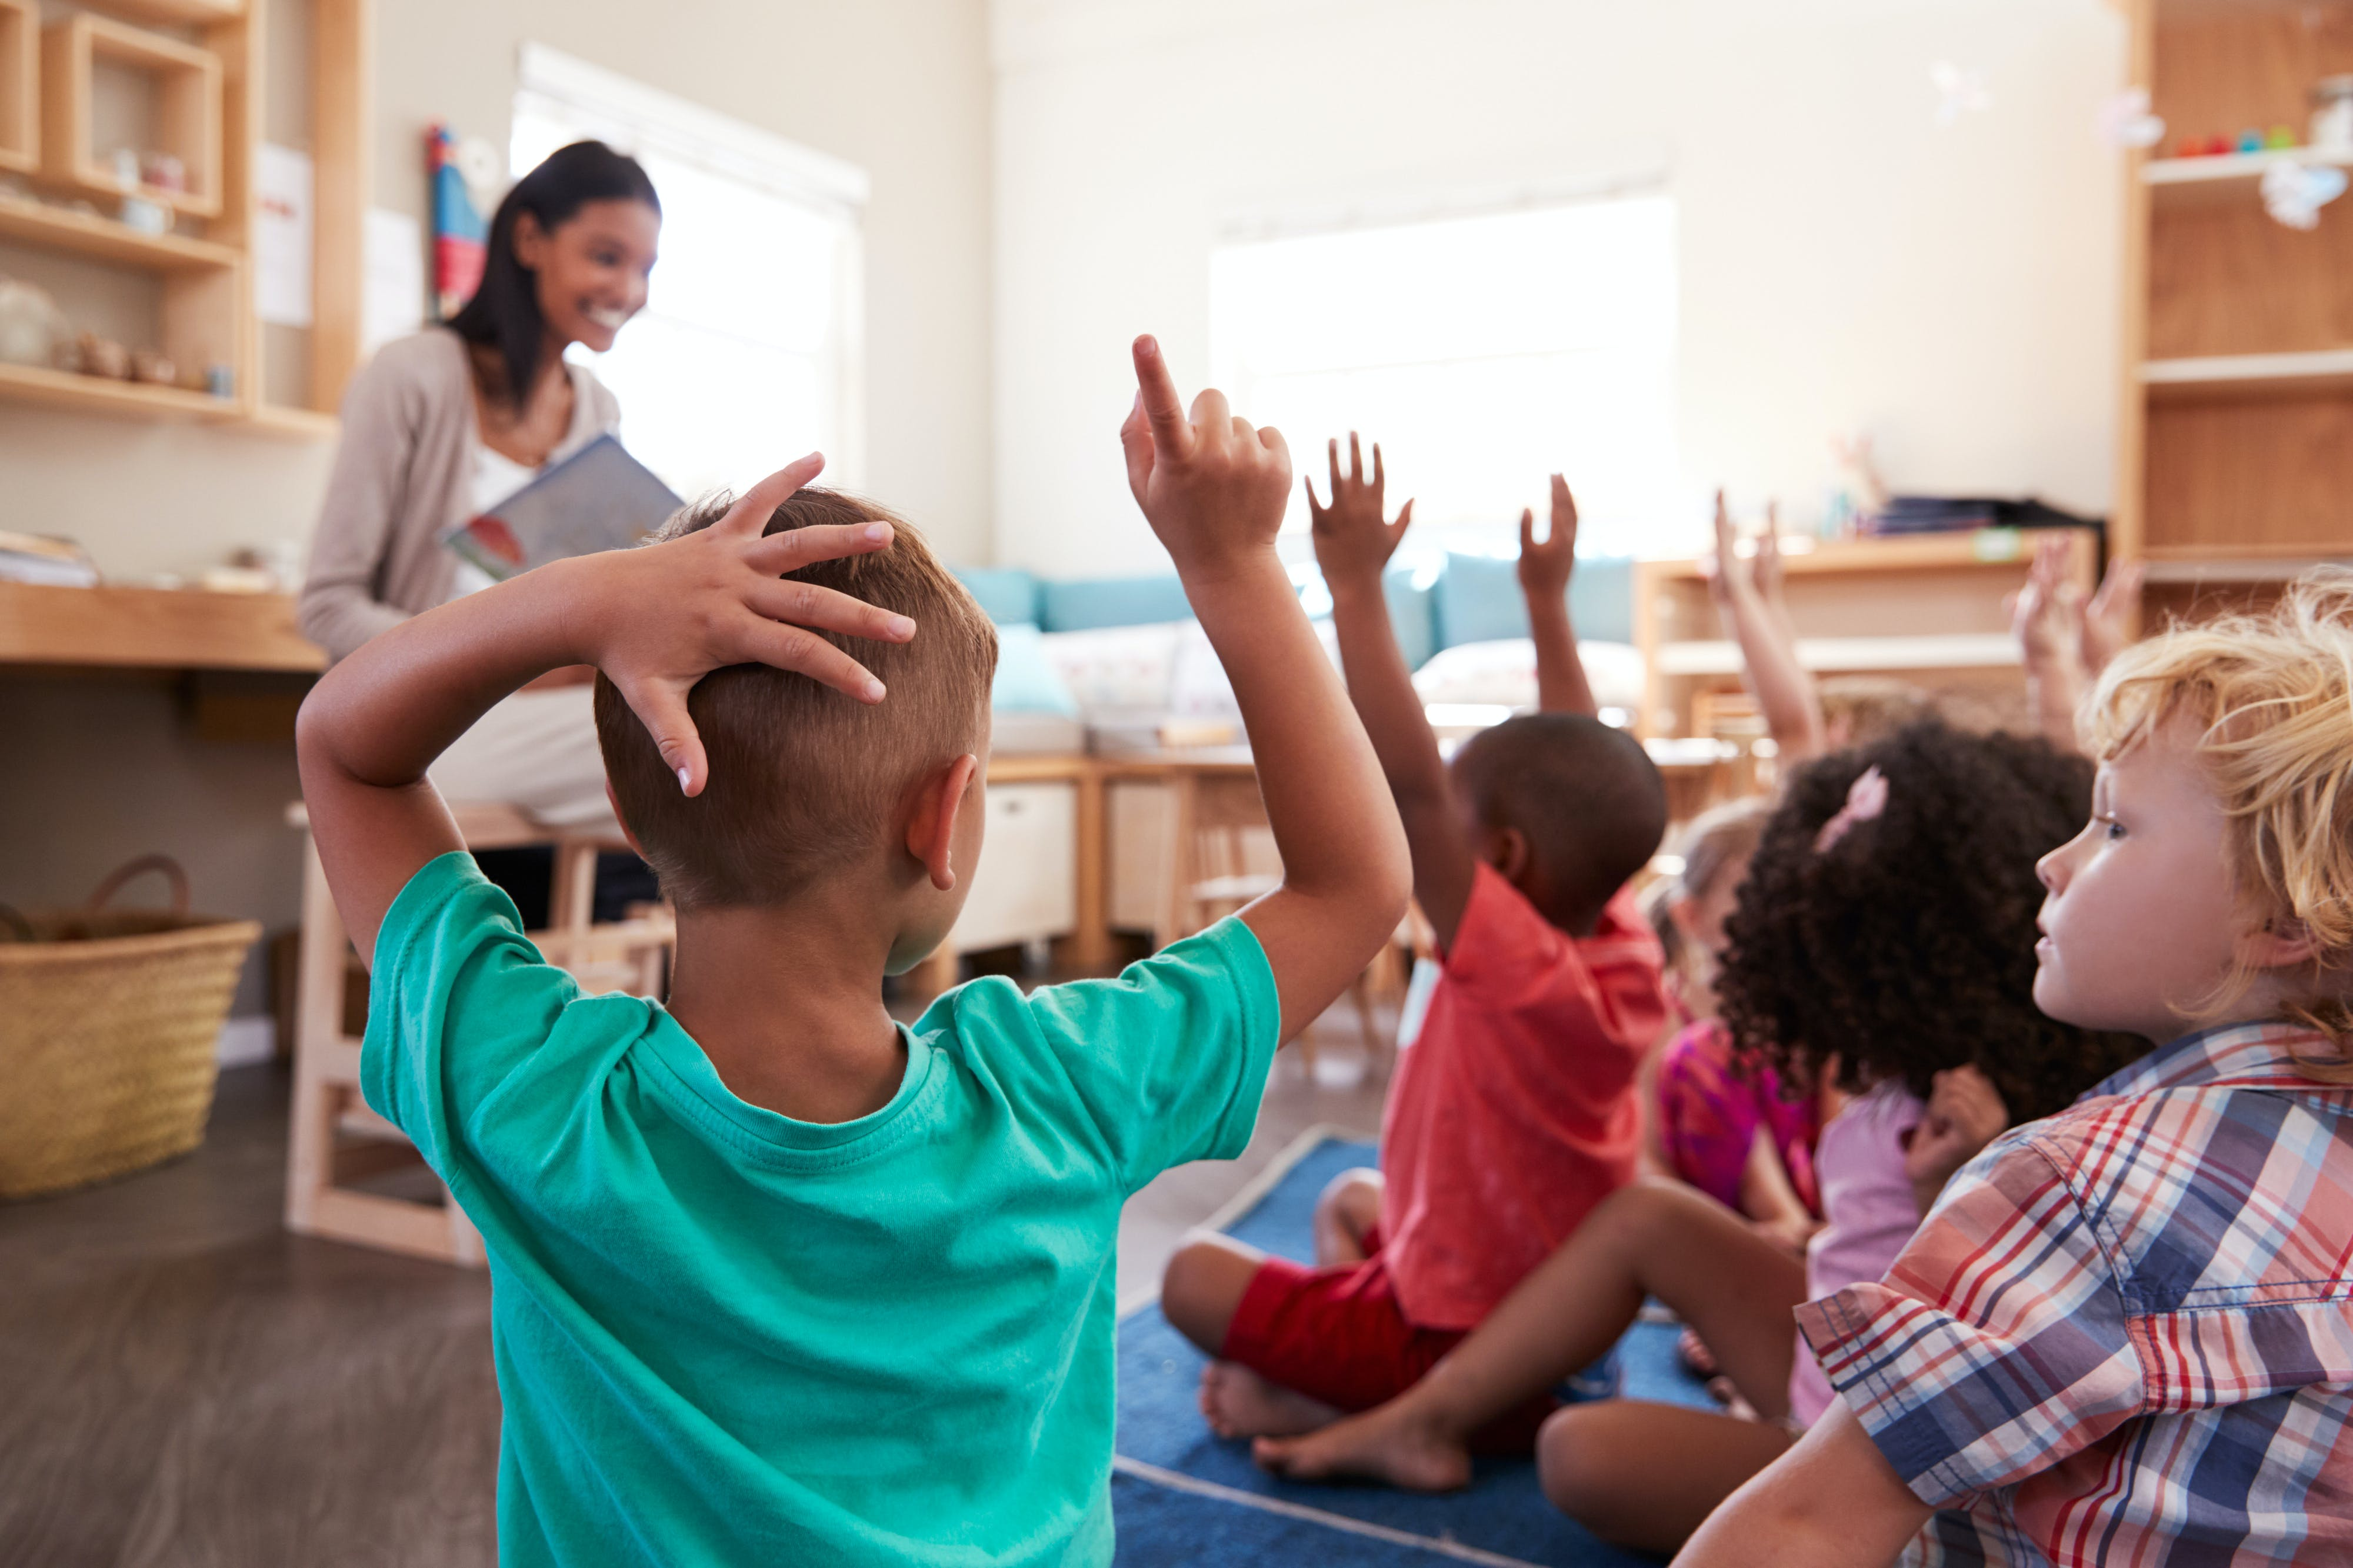 Pupils At A School Raising Hands To Answer Question